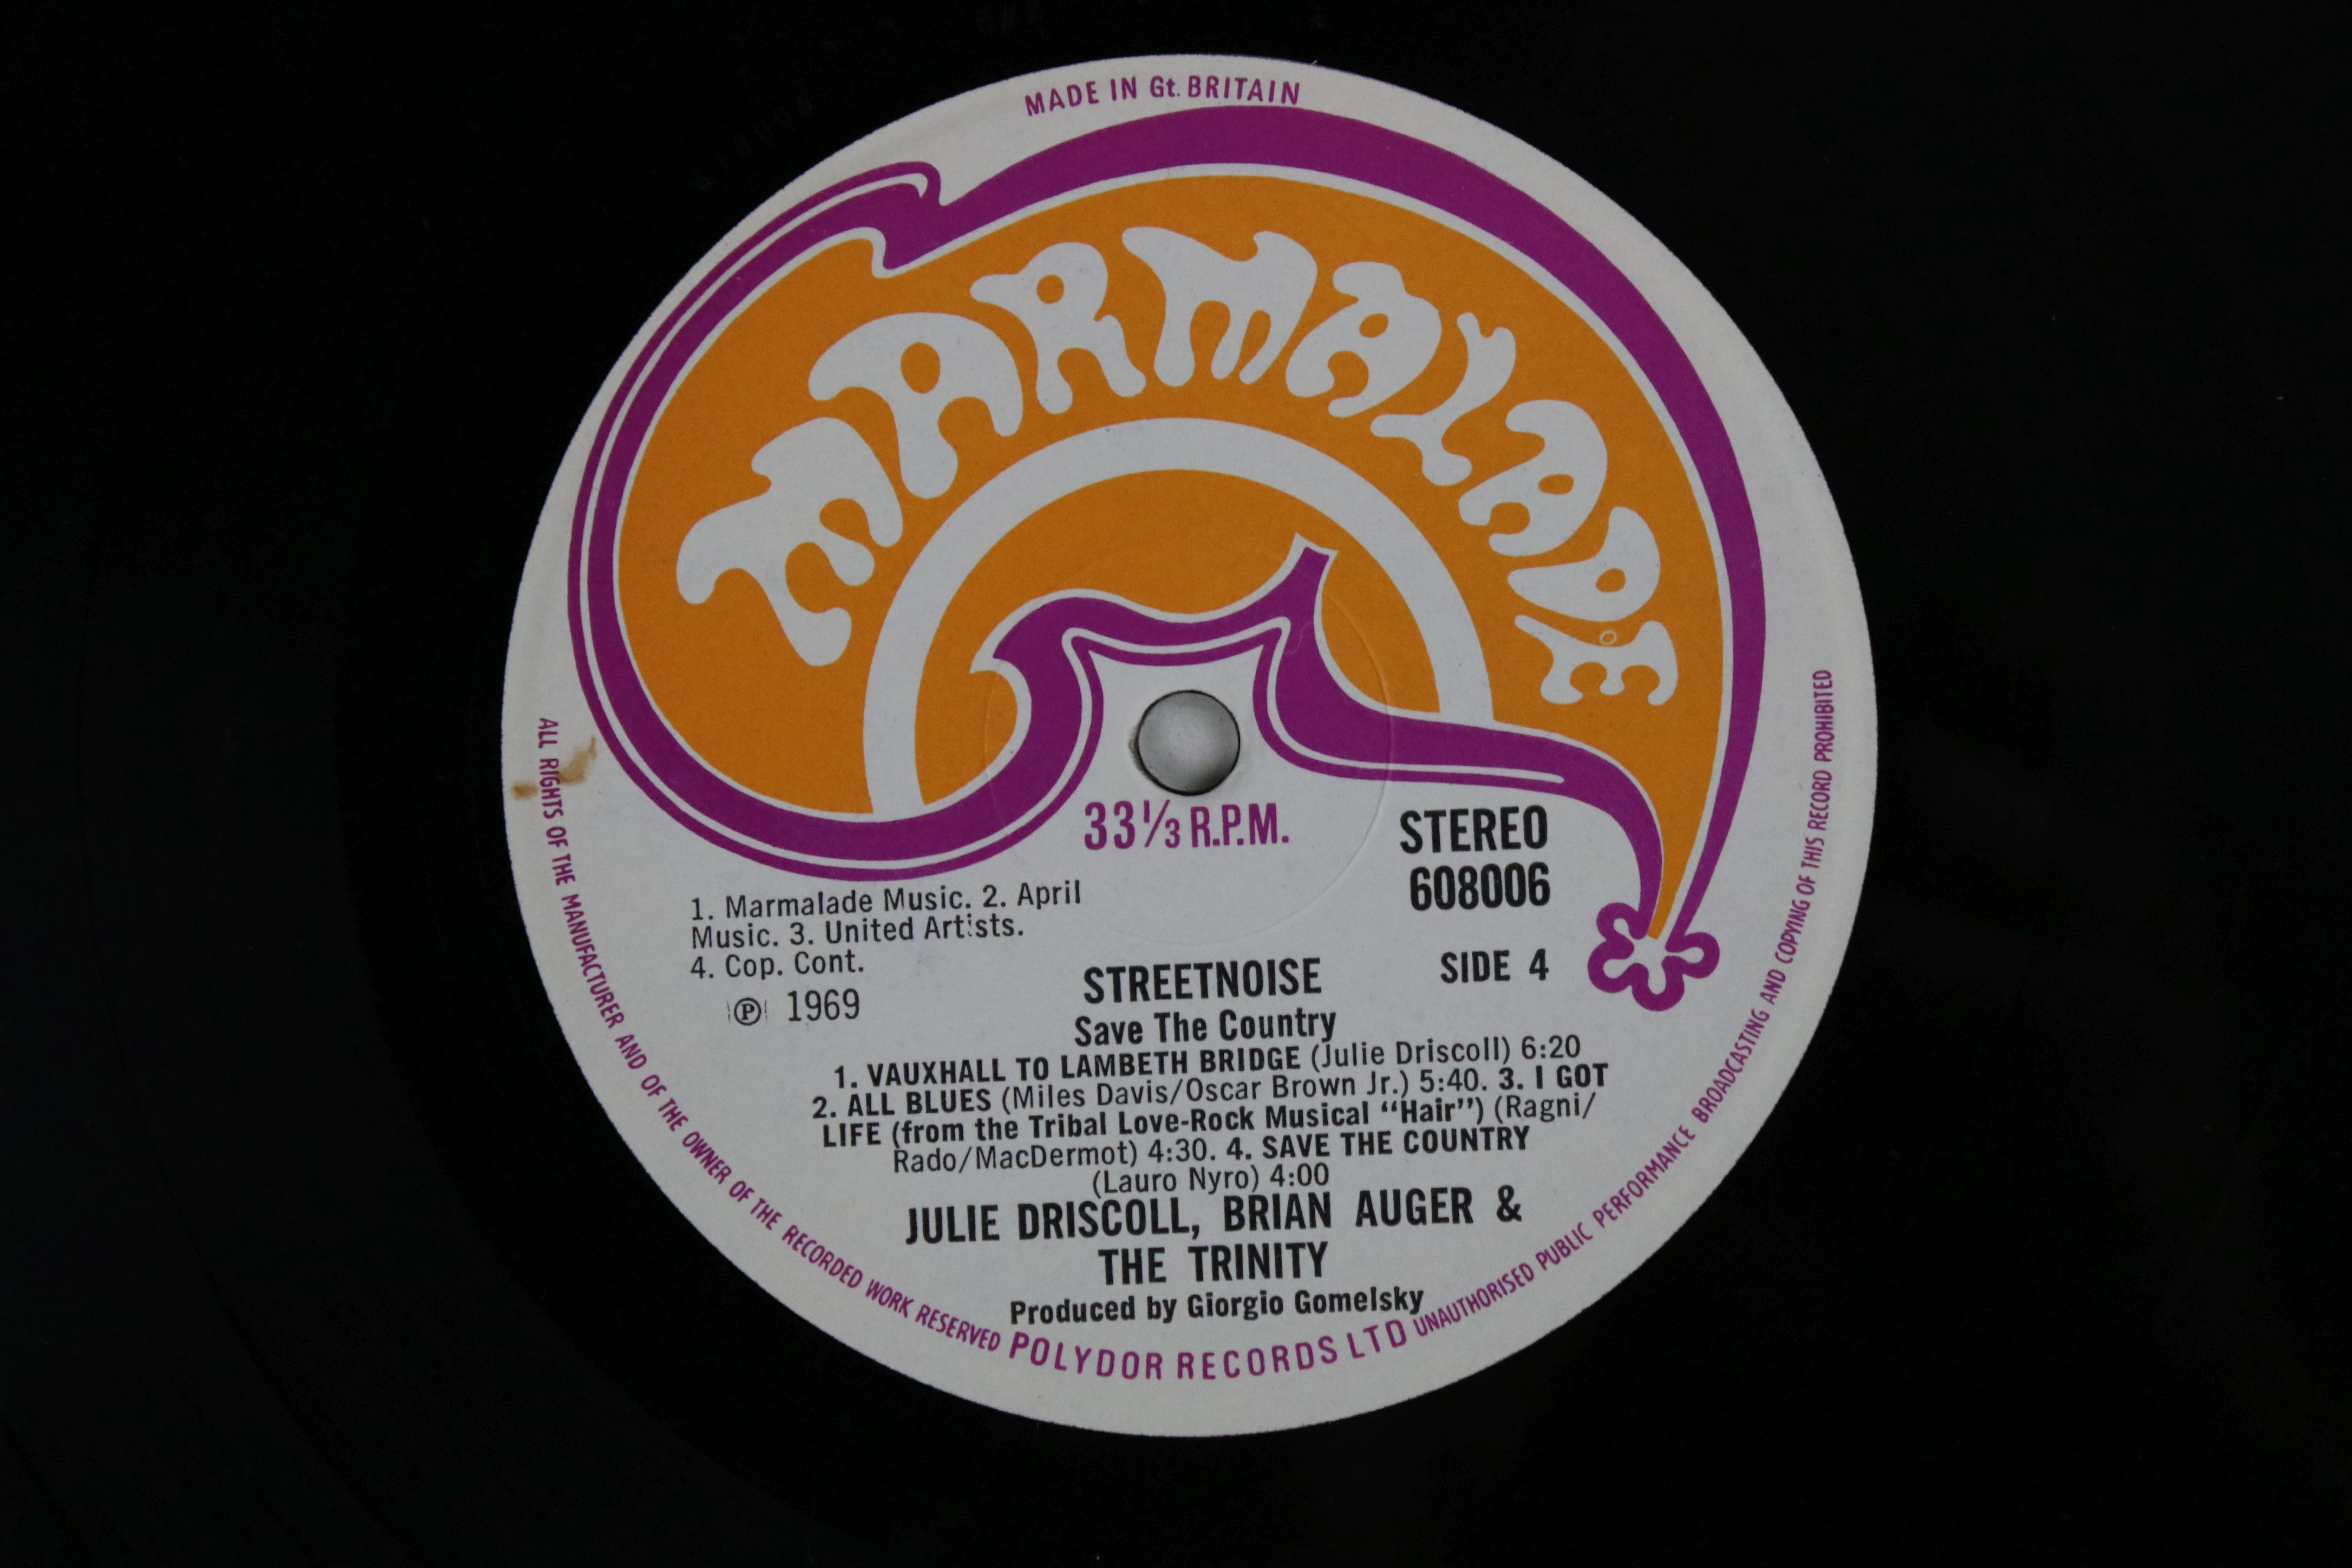 Vinyl - Julie Driscoll and Brian Auger Streetnoise LP on Marmalade 608005/6 Stereo, gatefold sleeve, - Image 6 of 6